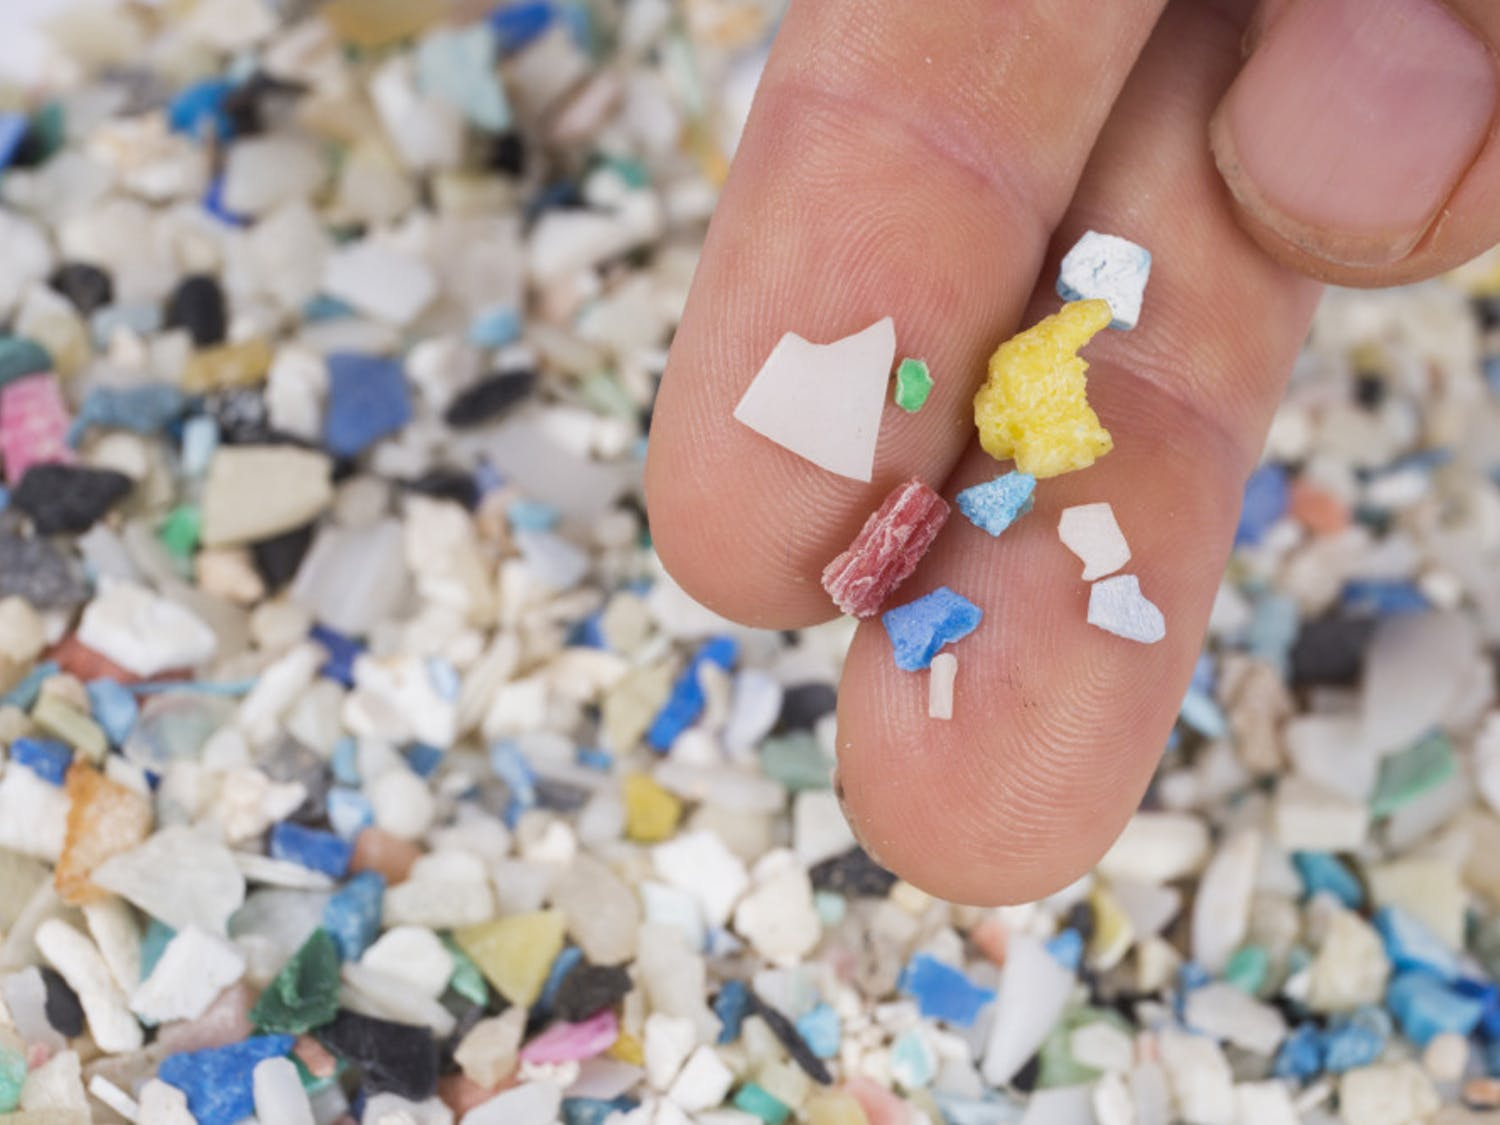 A pile of microplastic collected by The Florida Microplastic Awareness Project. Plastics like these are among the top ocean pollutants, according to Savanna Barry, a Cedar Key volunteer coordinator with the project.